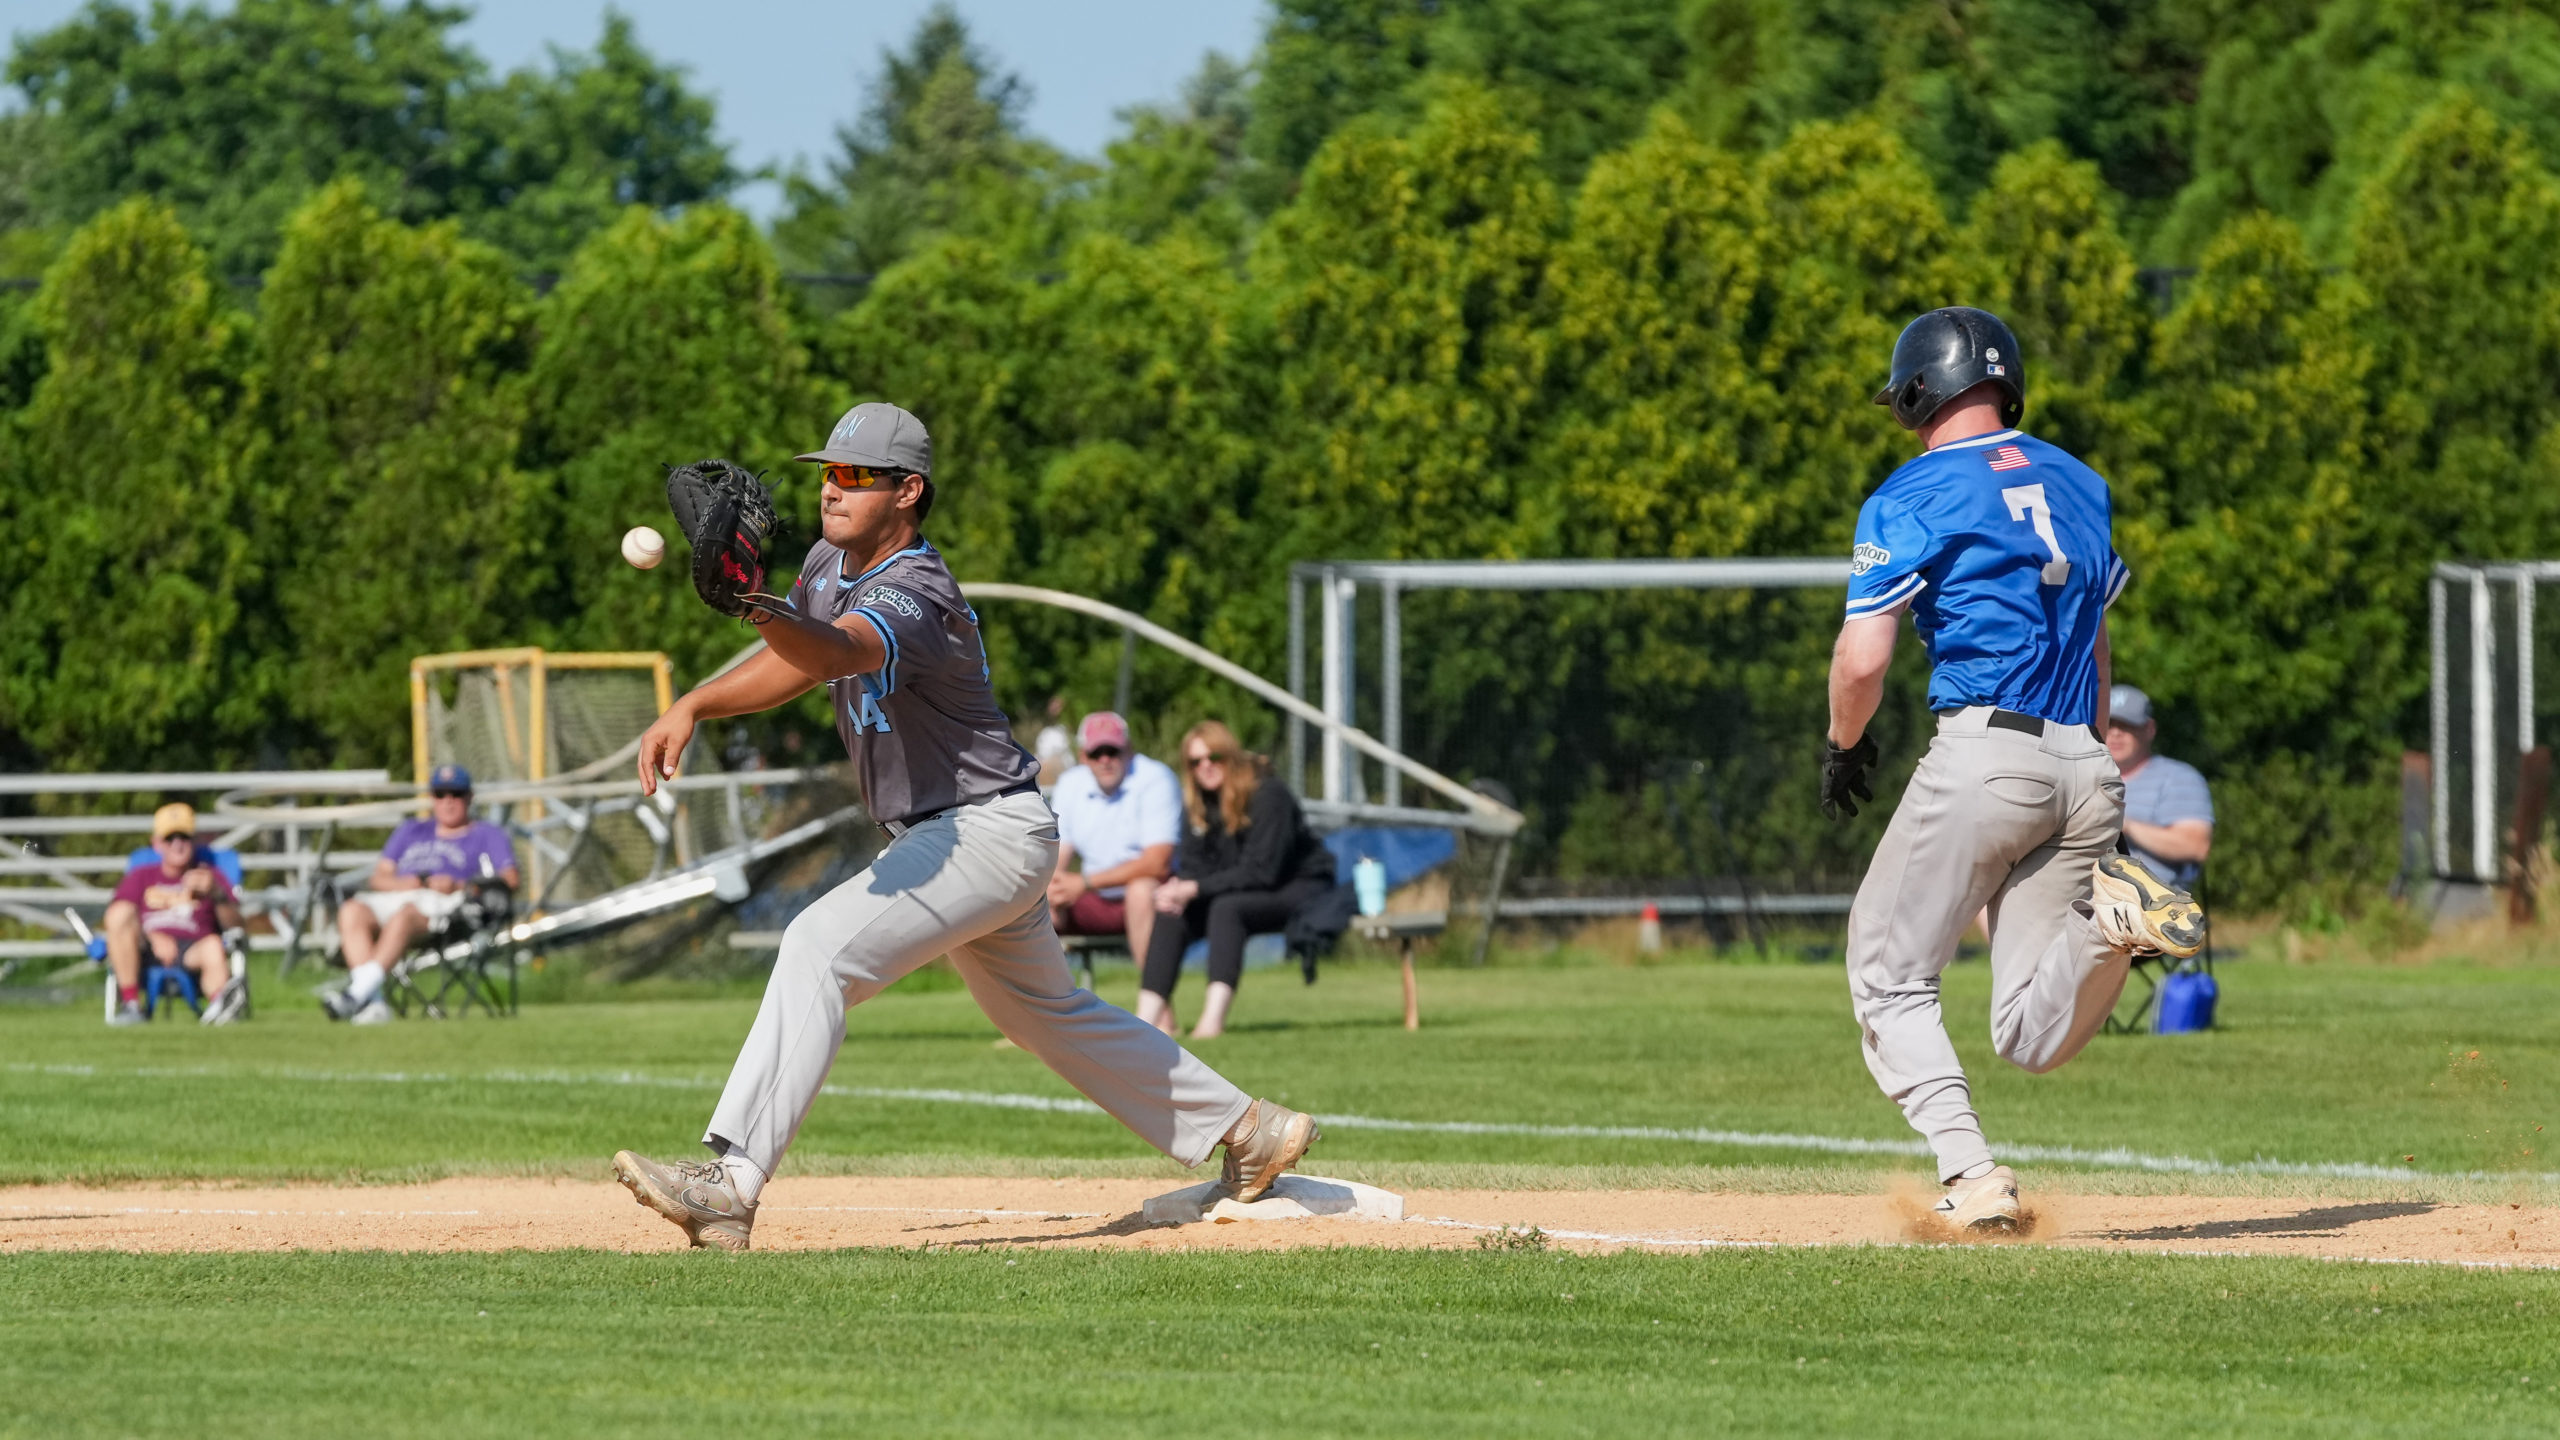 Whalers first baseman Luke Napolitano (Hofstra) makes an out to get Southampton's Tyler Robinson (Dartmouth).